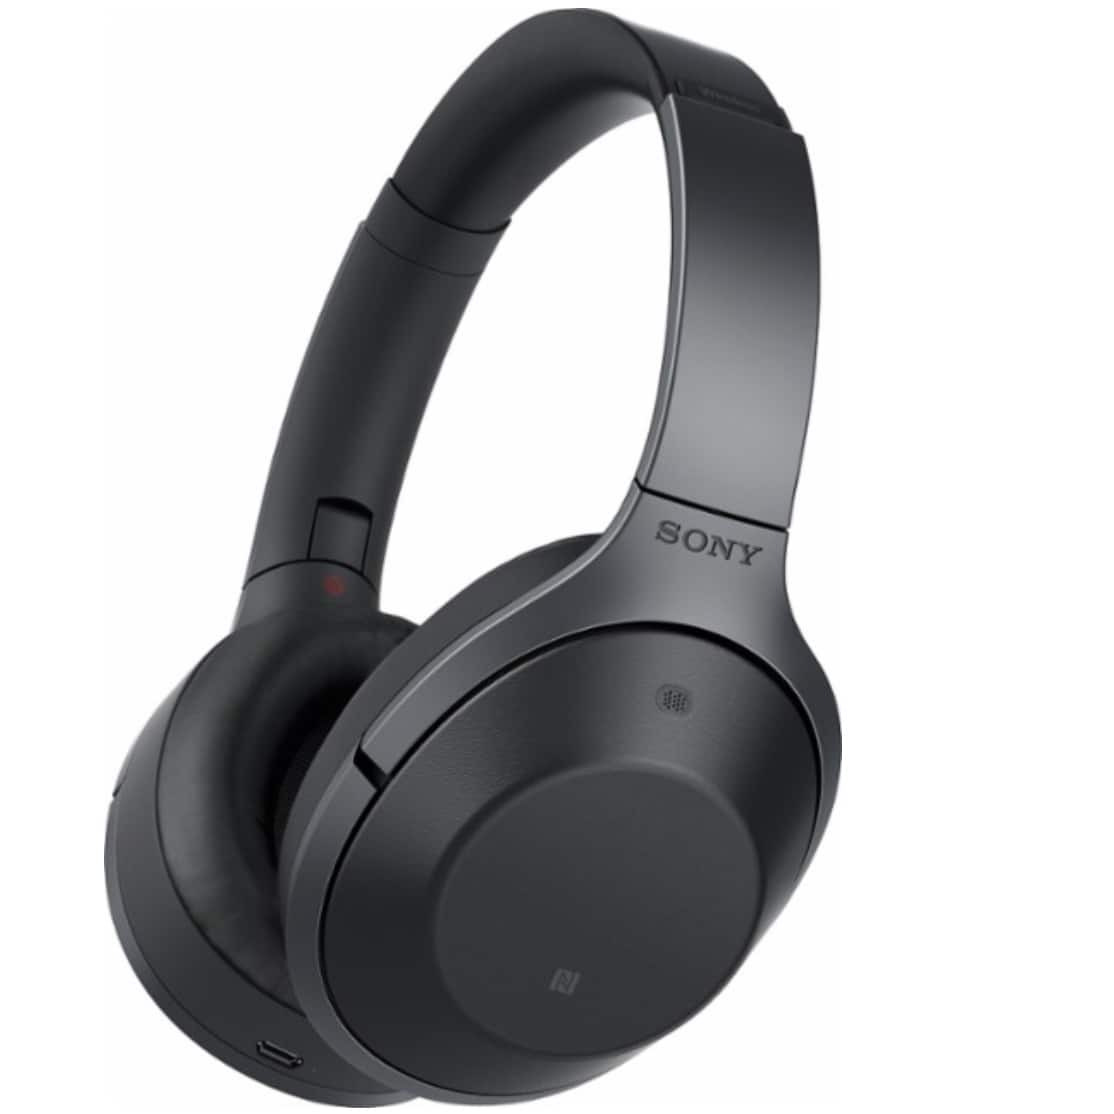 Sony 1000x Wireless Noise Cancelling Headphone $228.99